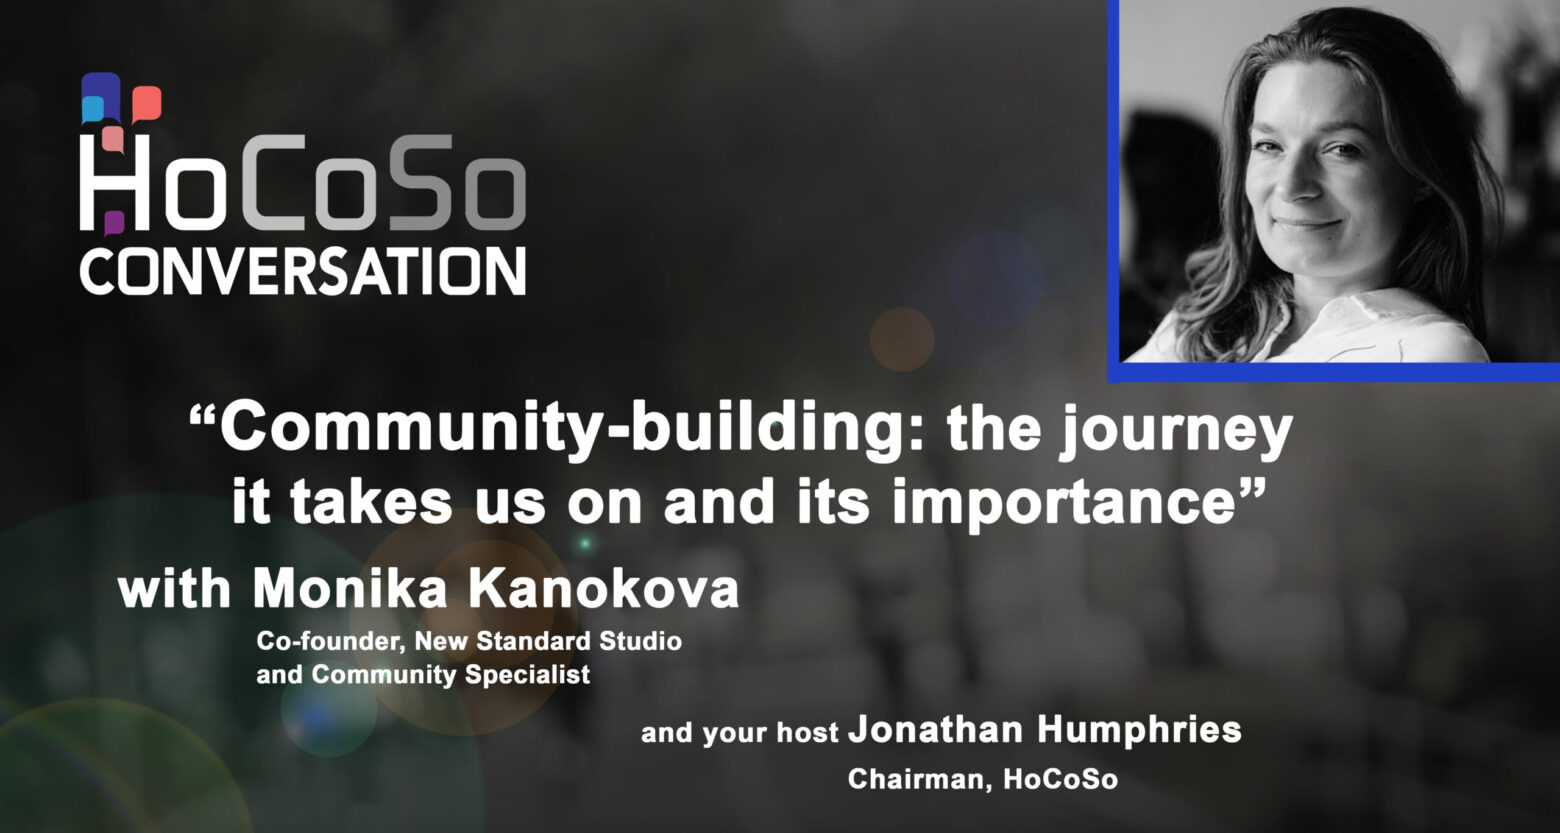 "HoCoSo CONVERSATION - ""Community Building: the journey it takes us on and its importance"" with Monika Kanokova"